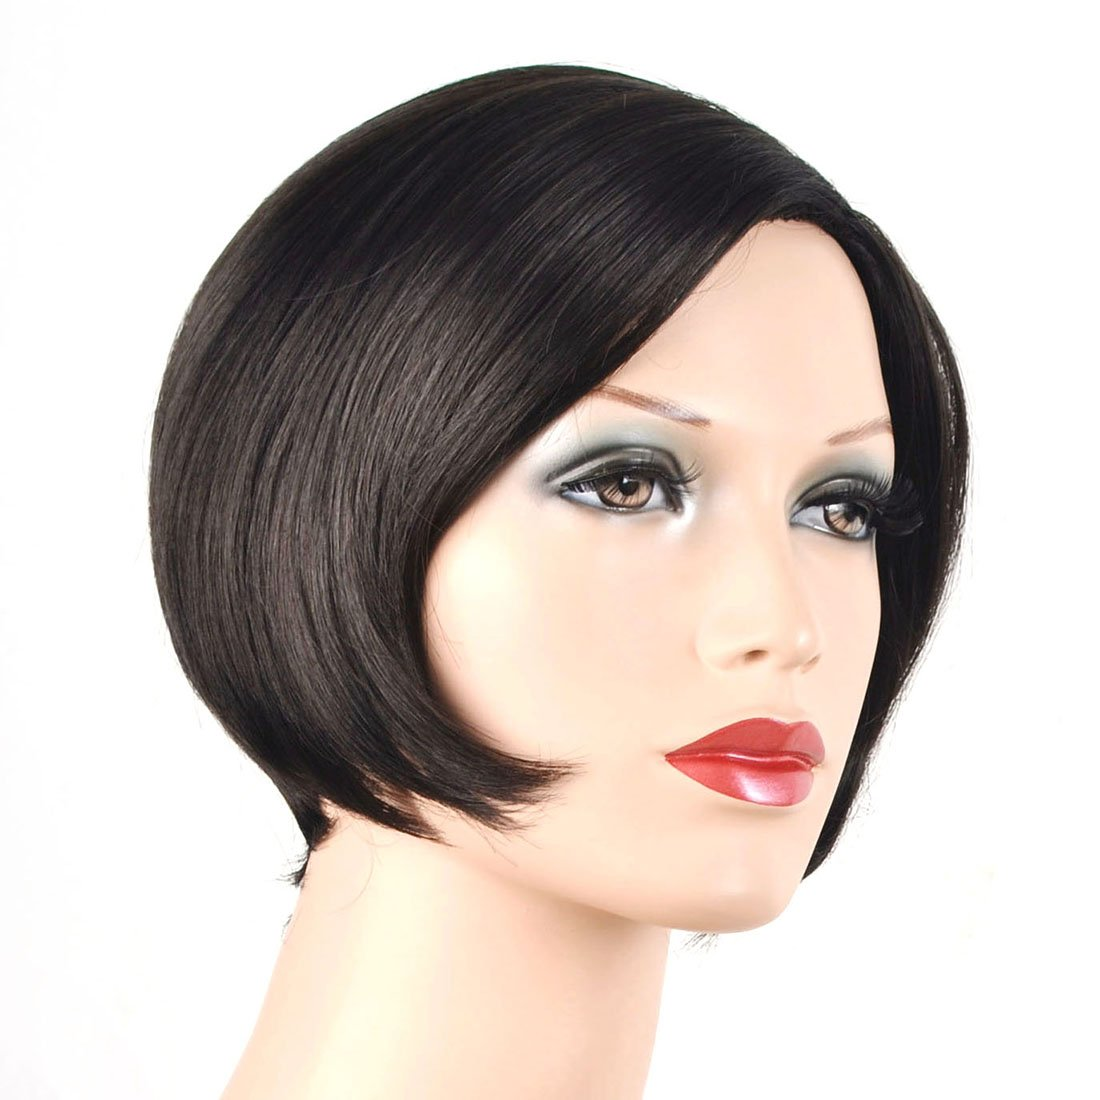 Coolsky Wig OL Short Black Woman Hair For Party or Daily Life Cosplay by COOLSKY (Image #4)